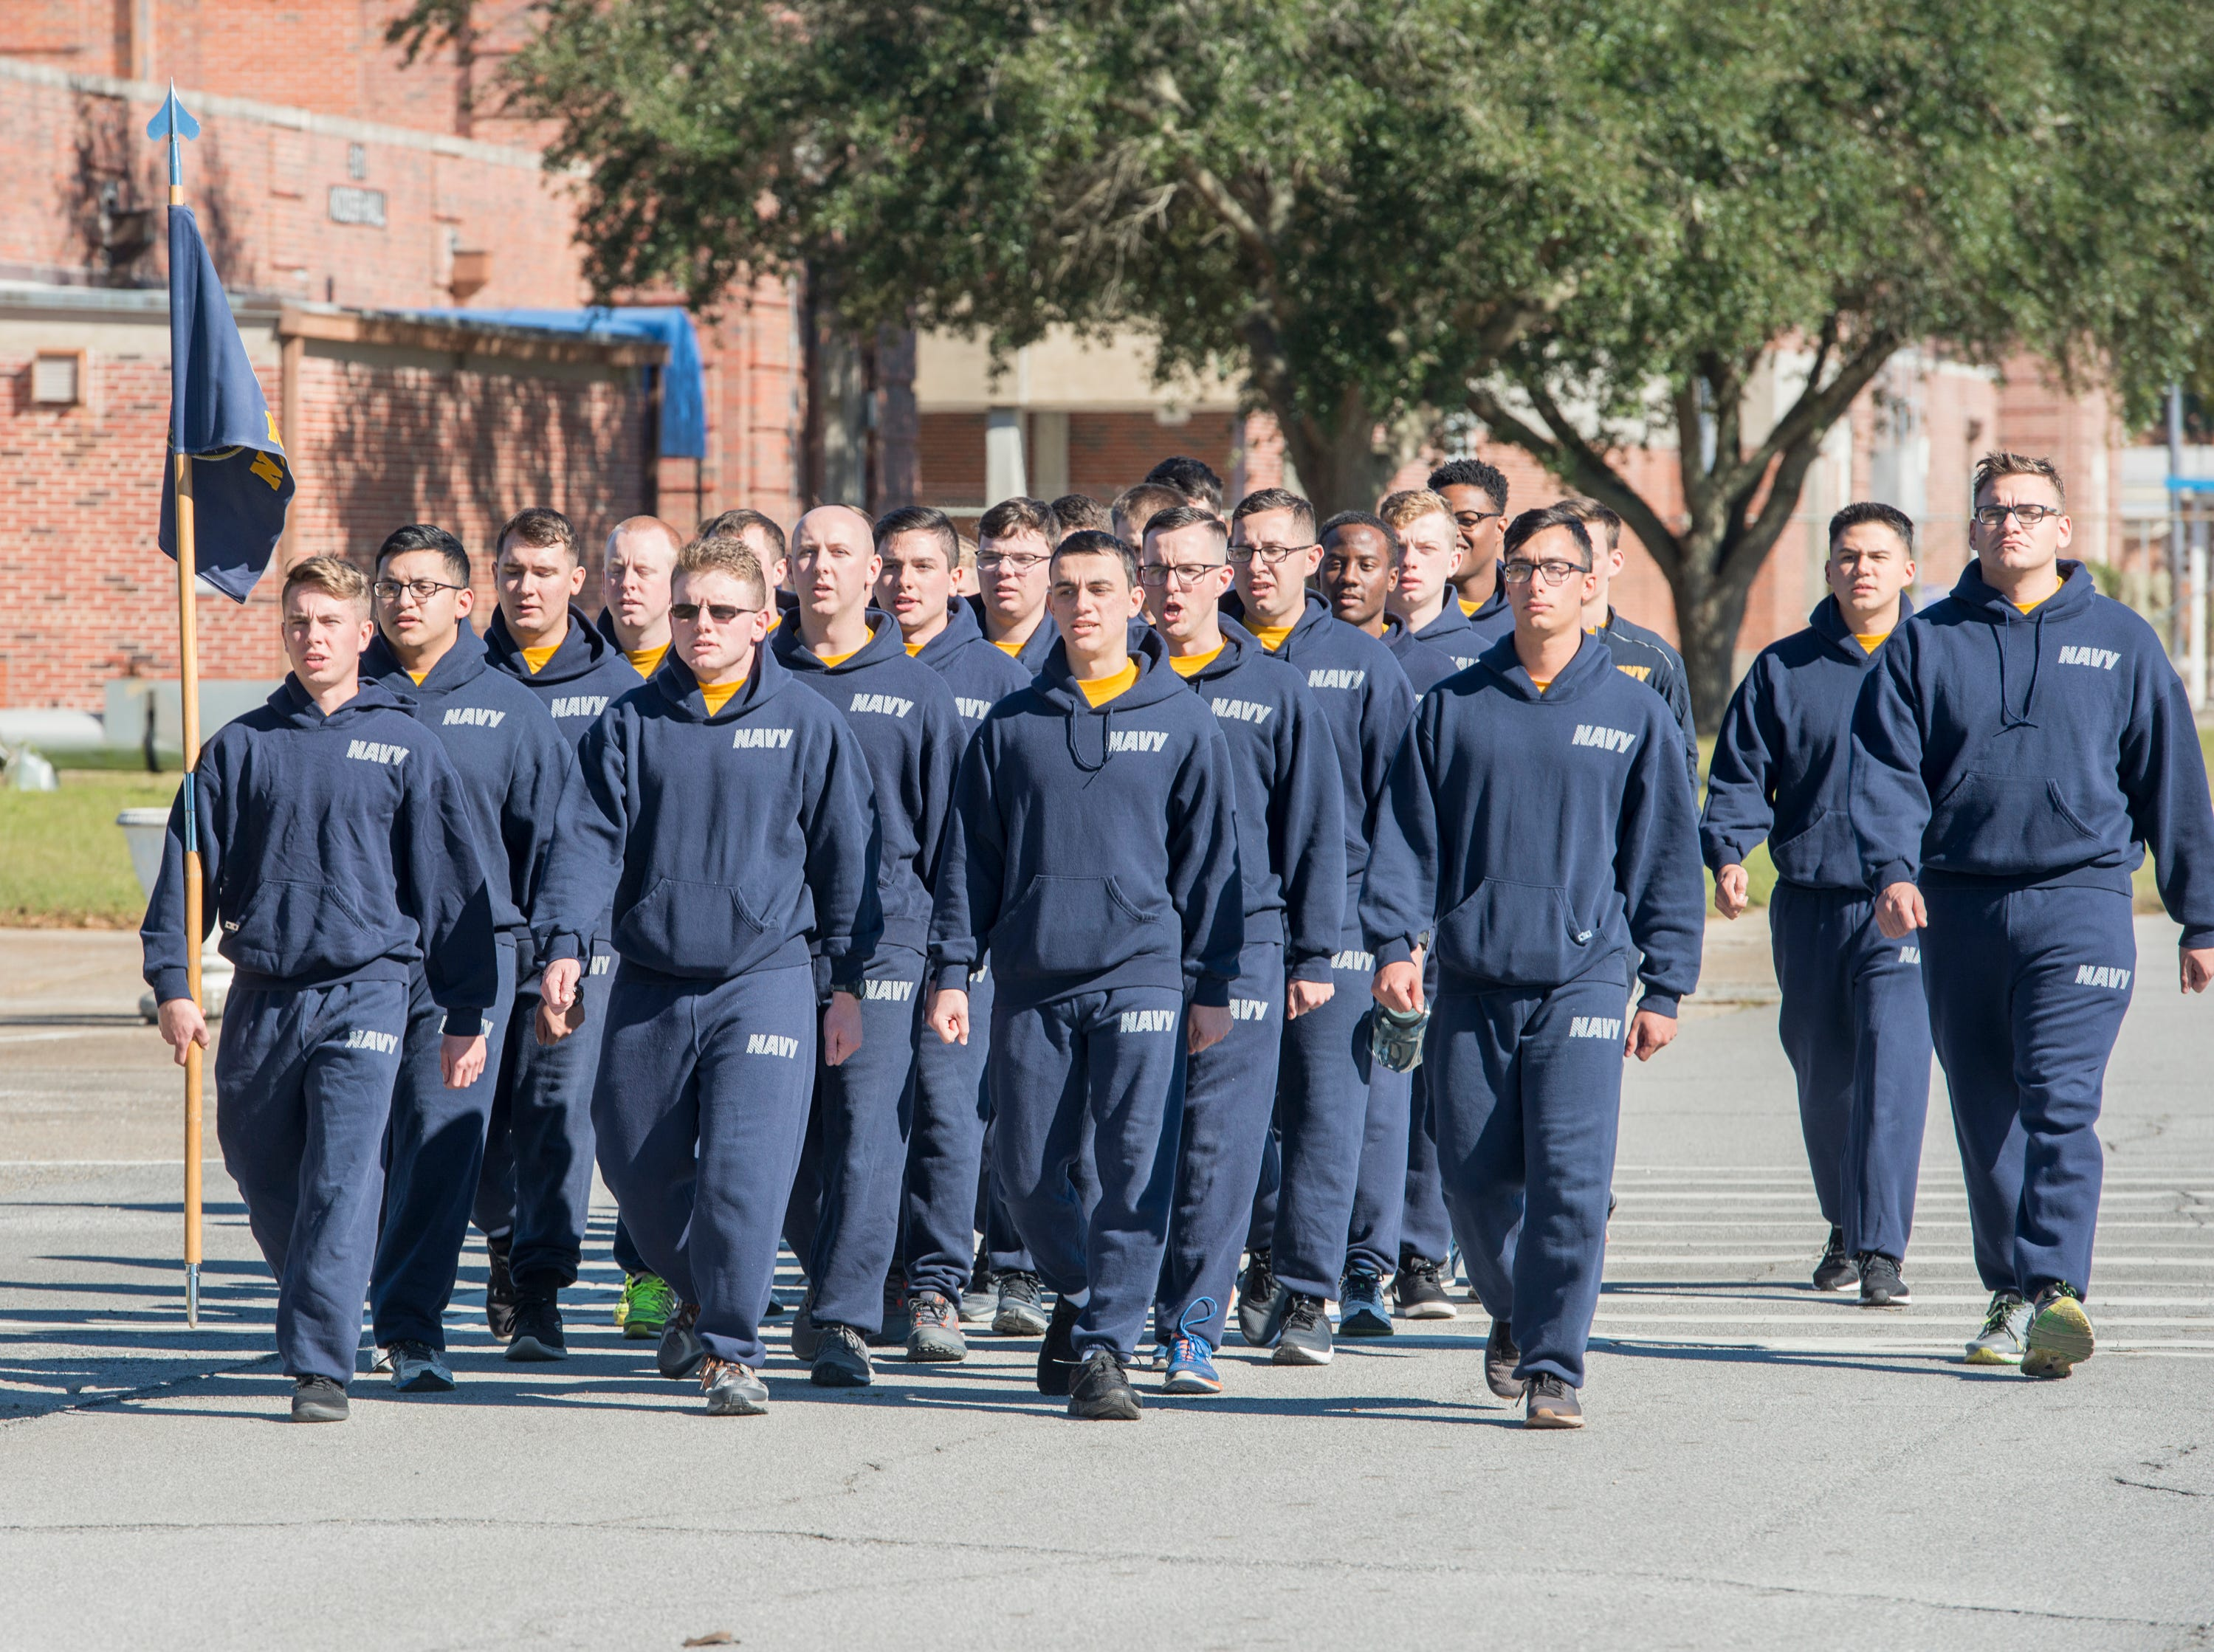 Sailors march in between classes at NAS Pensacola Corry Station in Pensacola on Thursday, January 10, 2019.